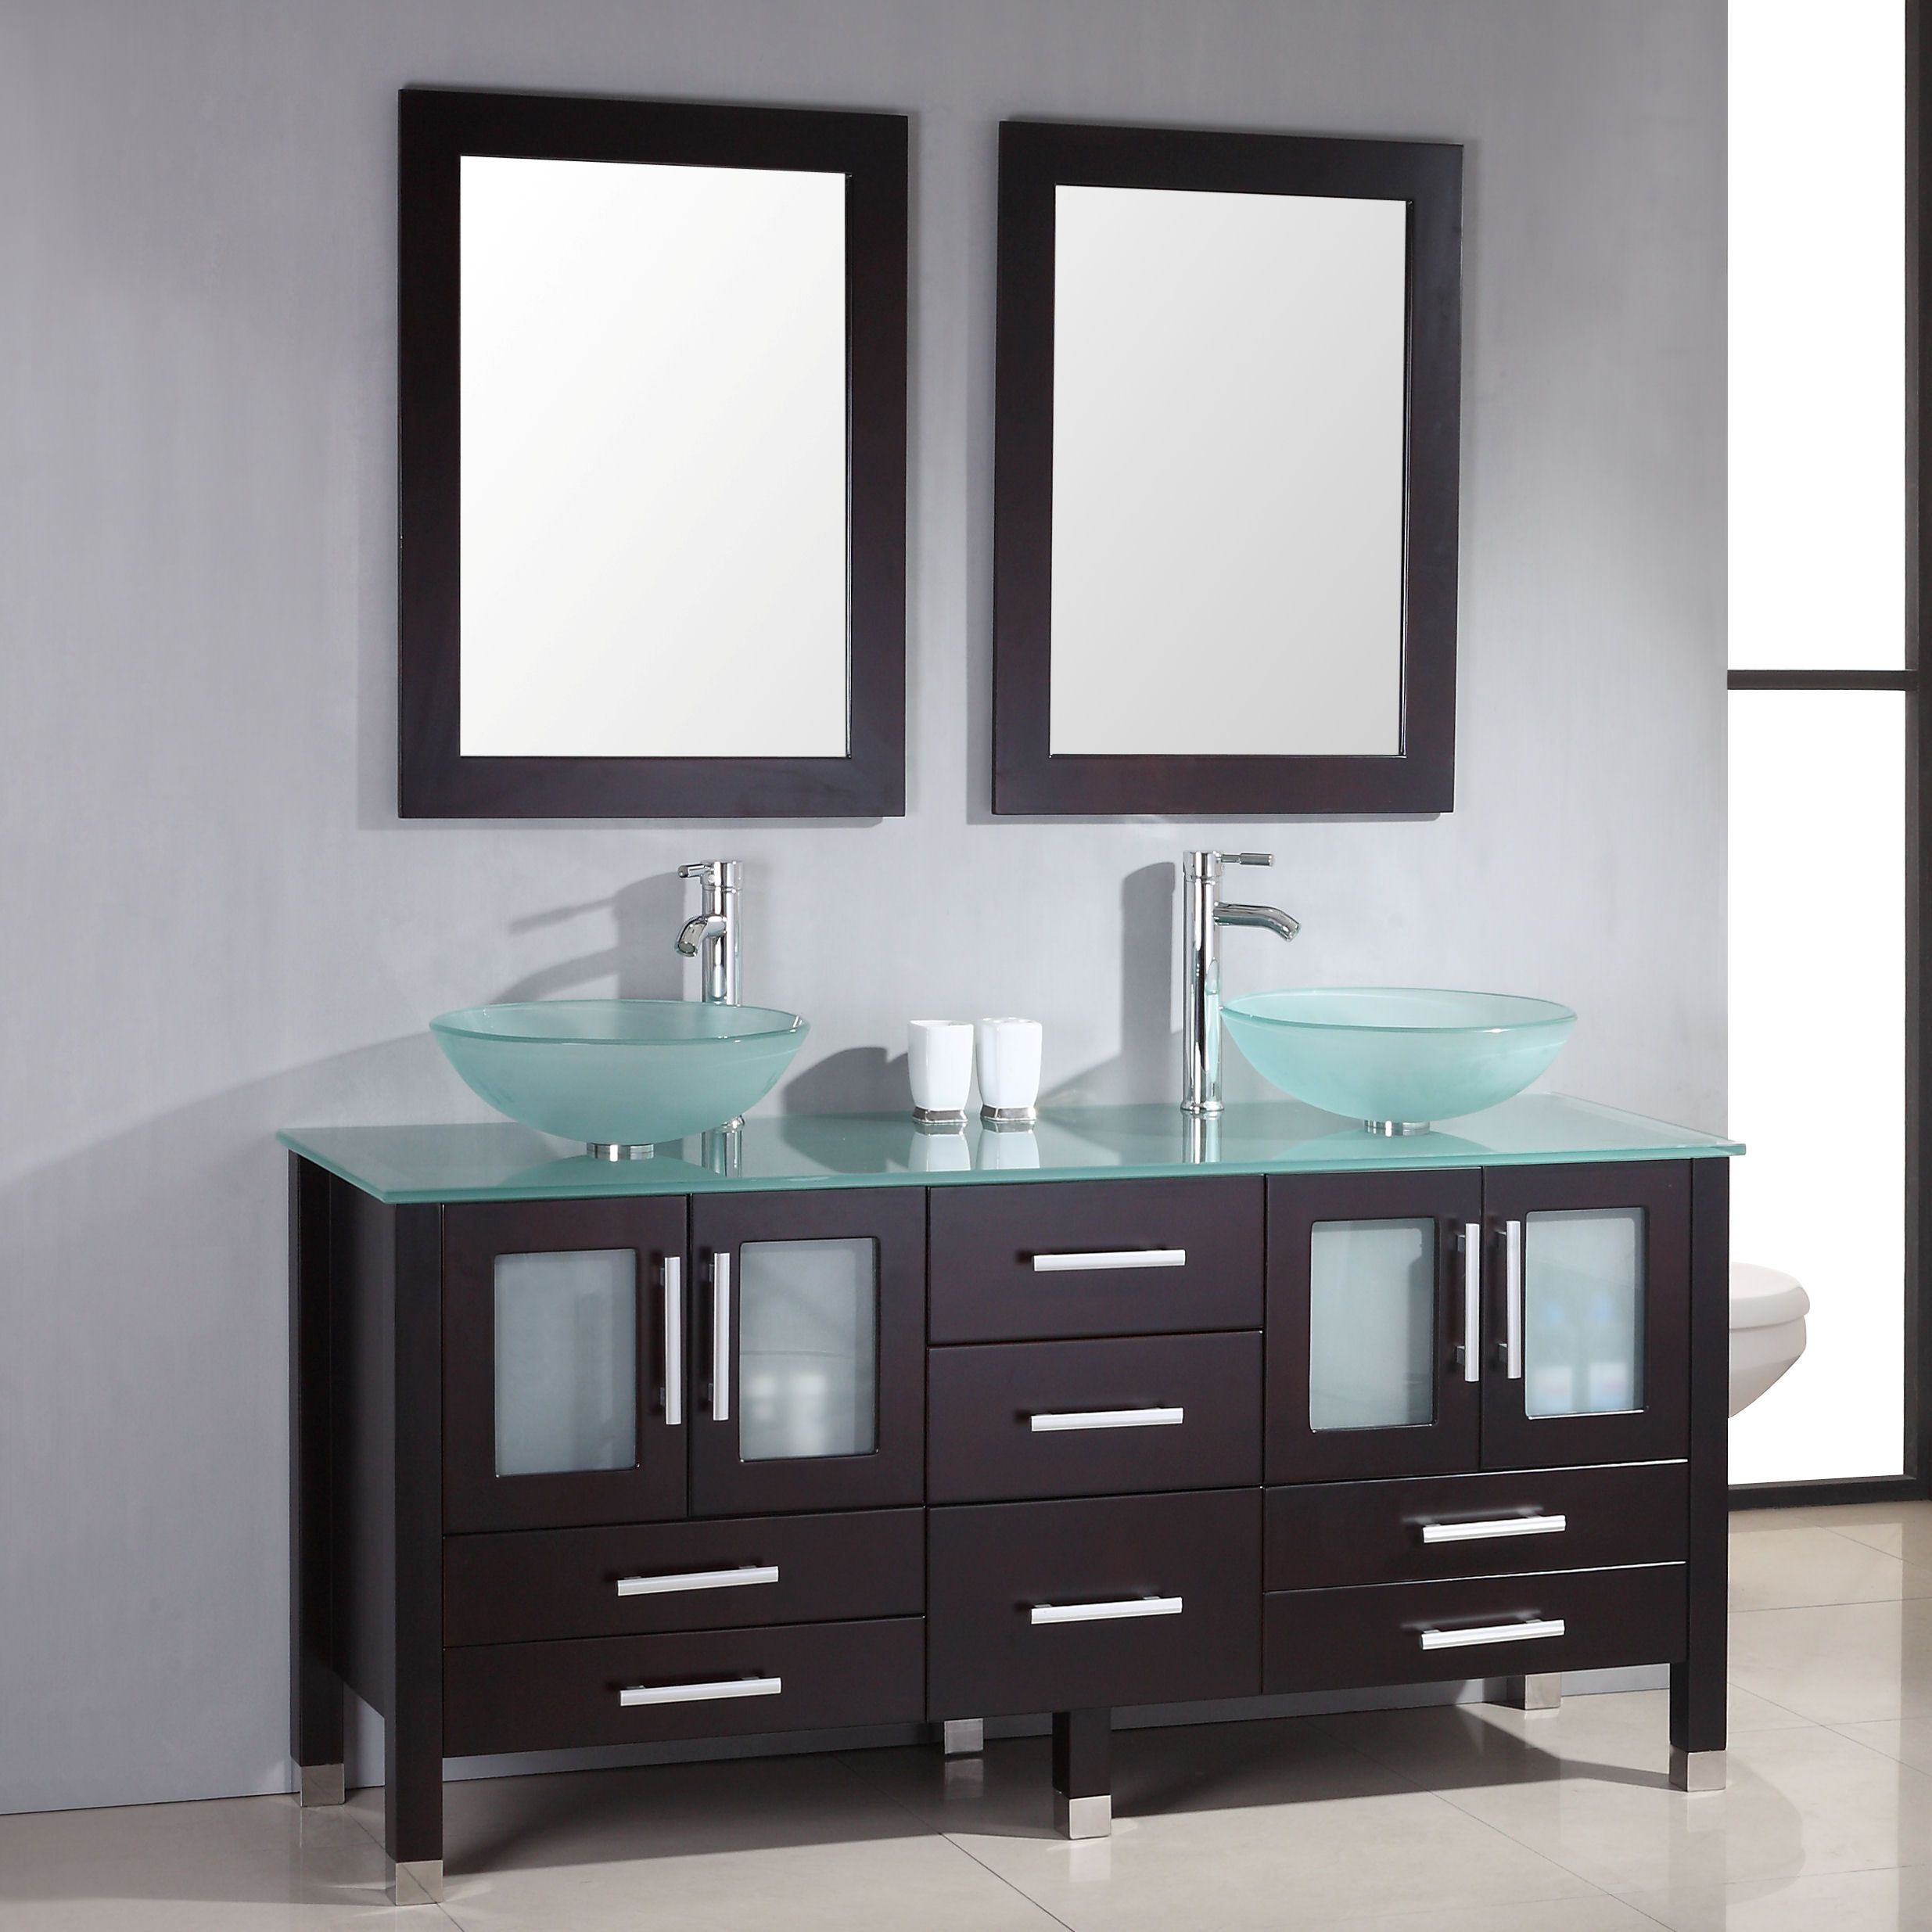 space combine with com vanity sink e signaturehardware subscribed double single height innovative lighting vanities credited bathroom ideas kerry design vessel has from standard sawyer sinks for corner and mirror simple